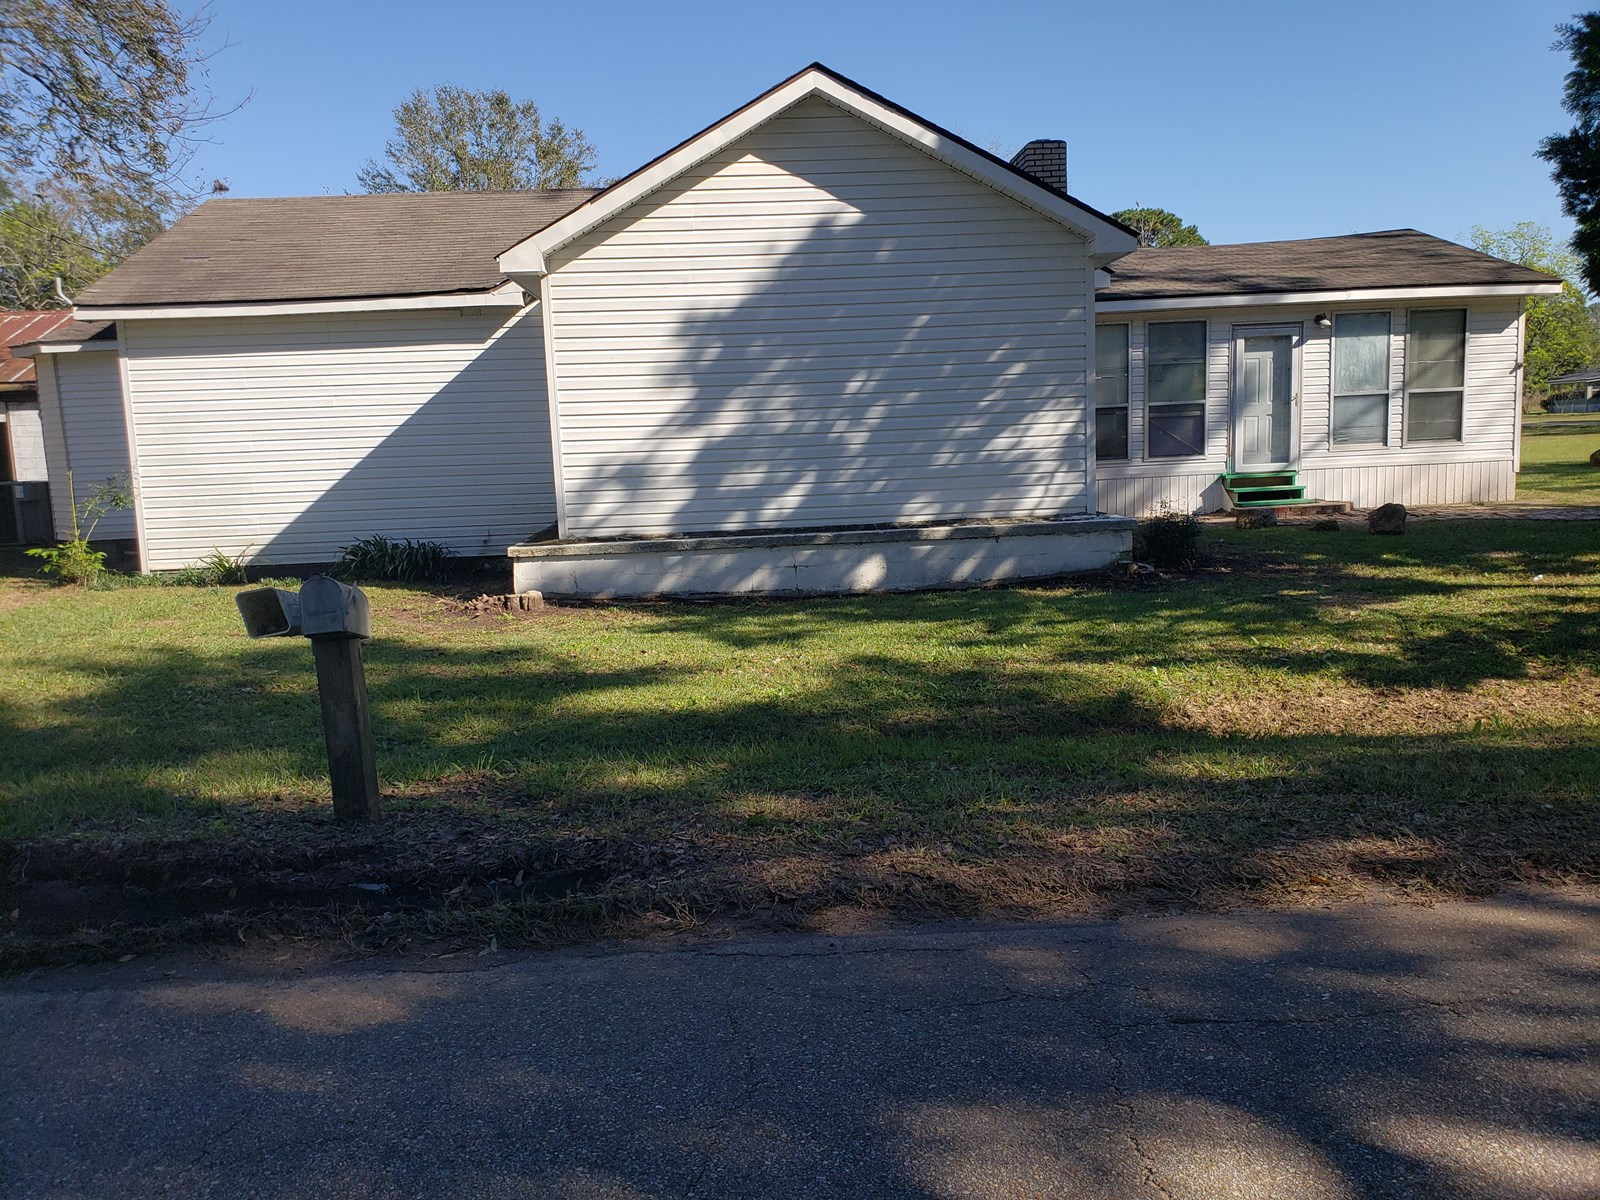 HOME FOR SALE HARTFORD, ALABAMA ON 1.16 ACRES